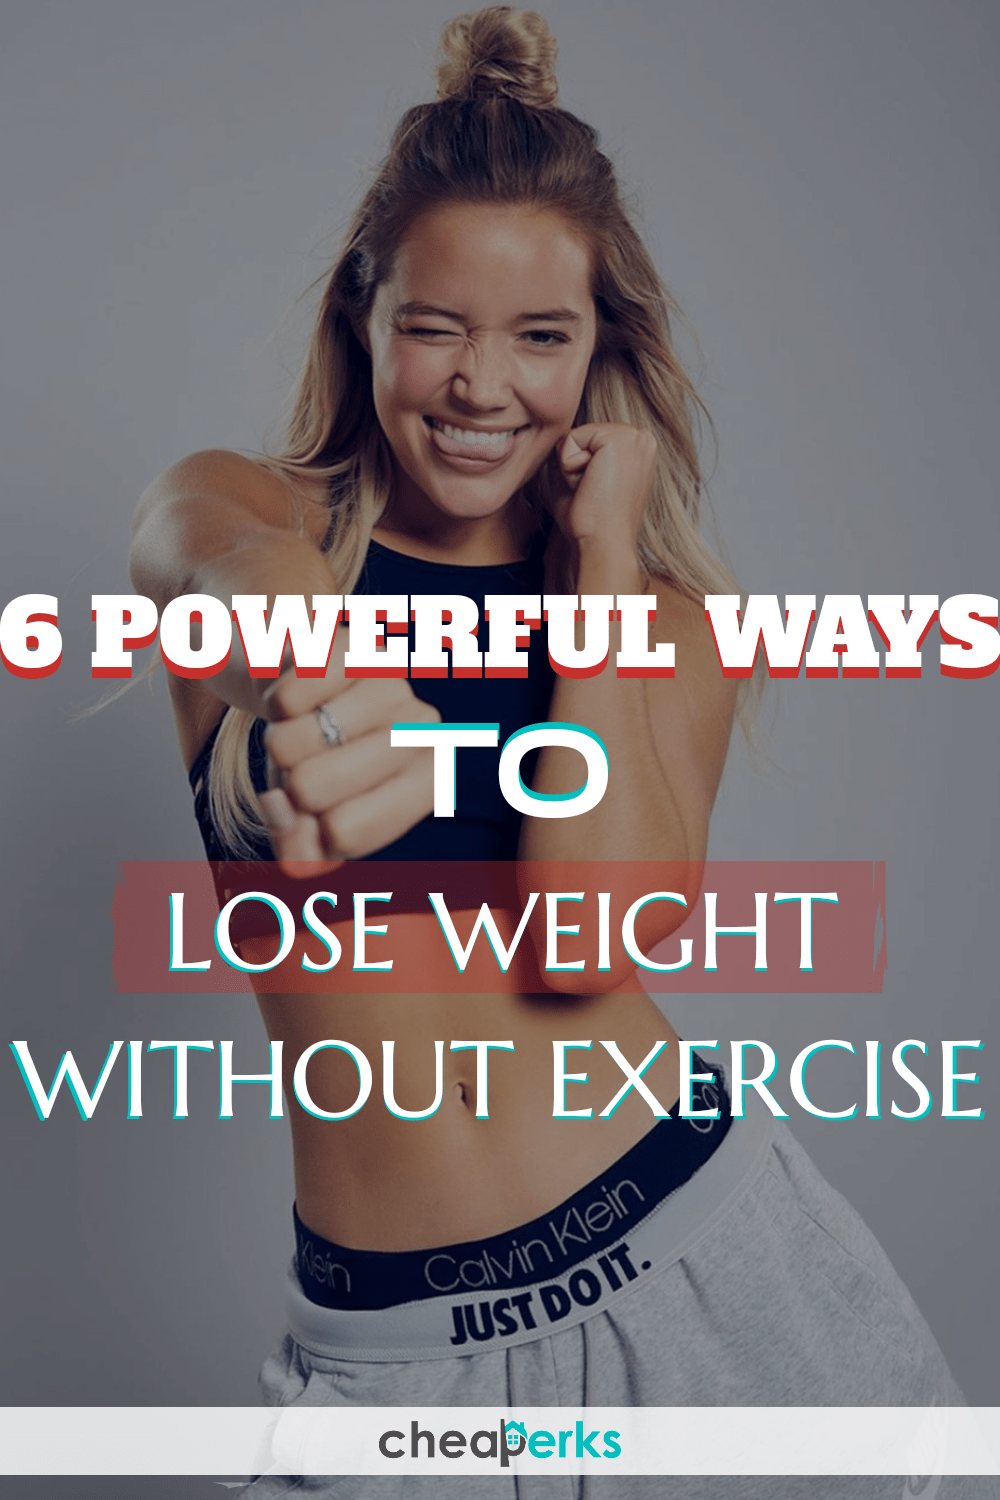 6 Powerful Ways to Lose Weight without Exercise